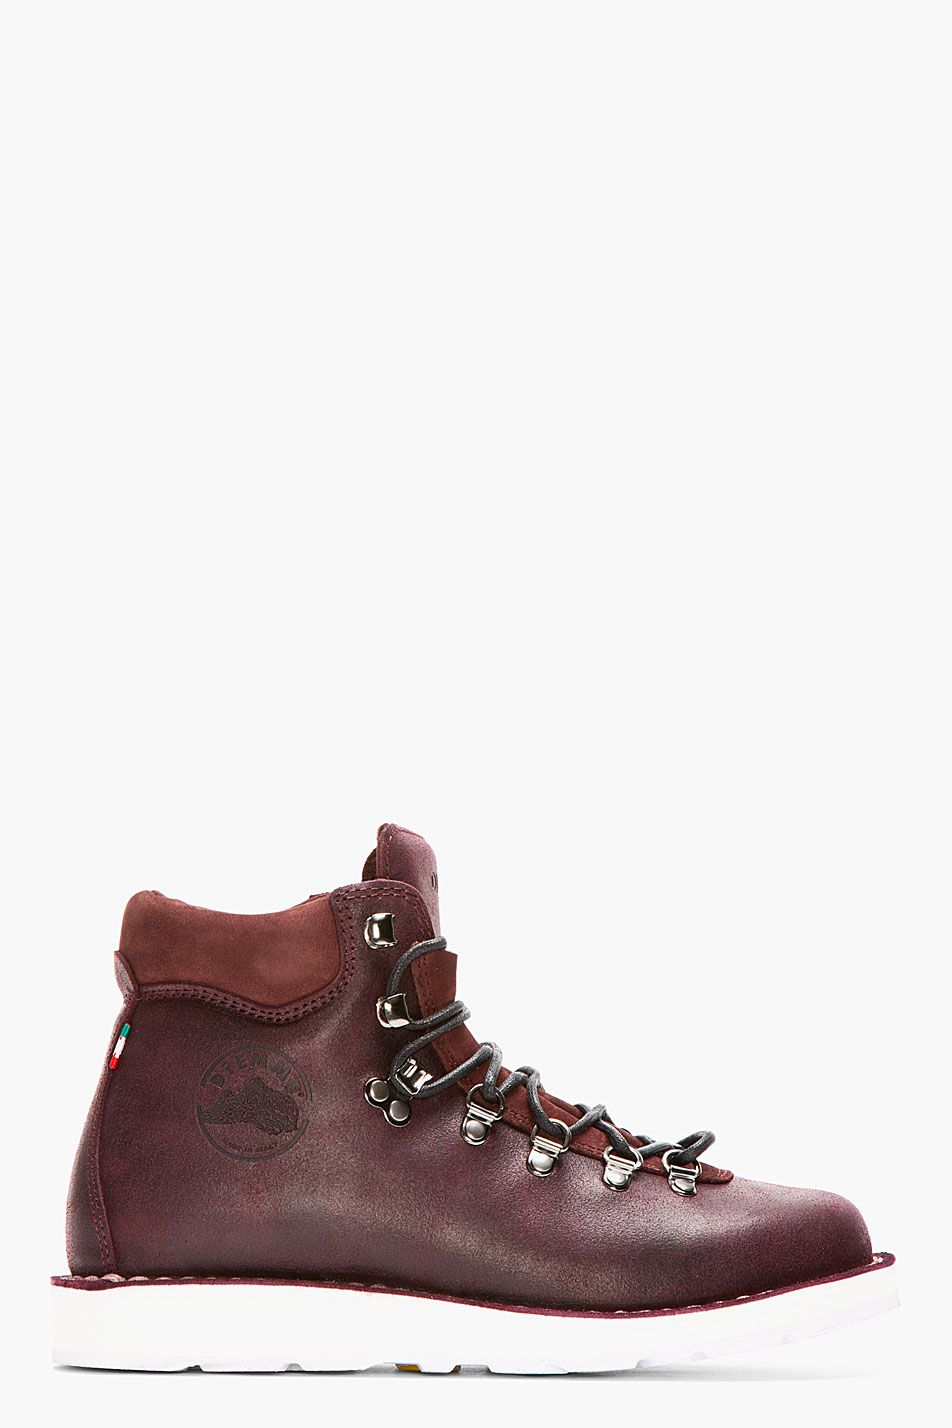 DIEMME Dark Burgundy Brushed Leather Roccia Vet Boots